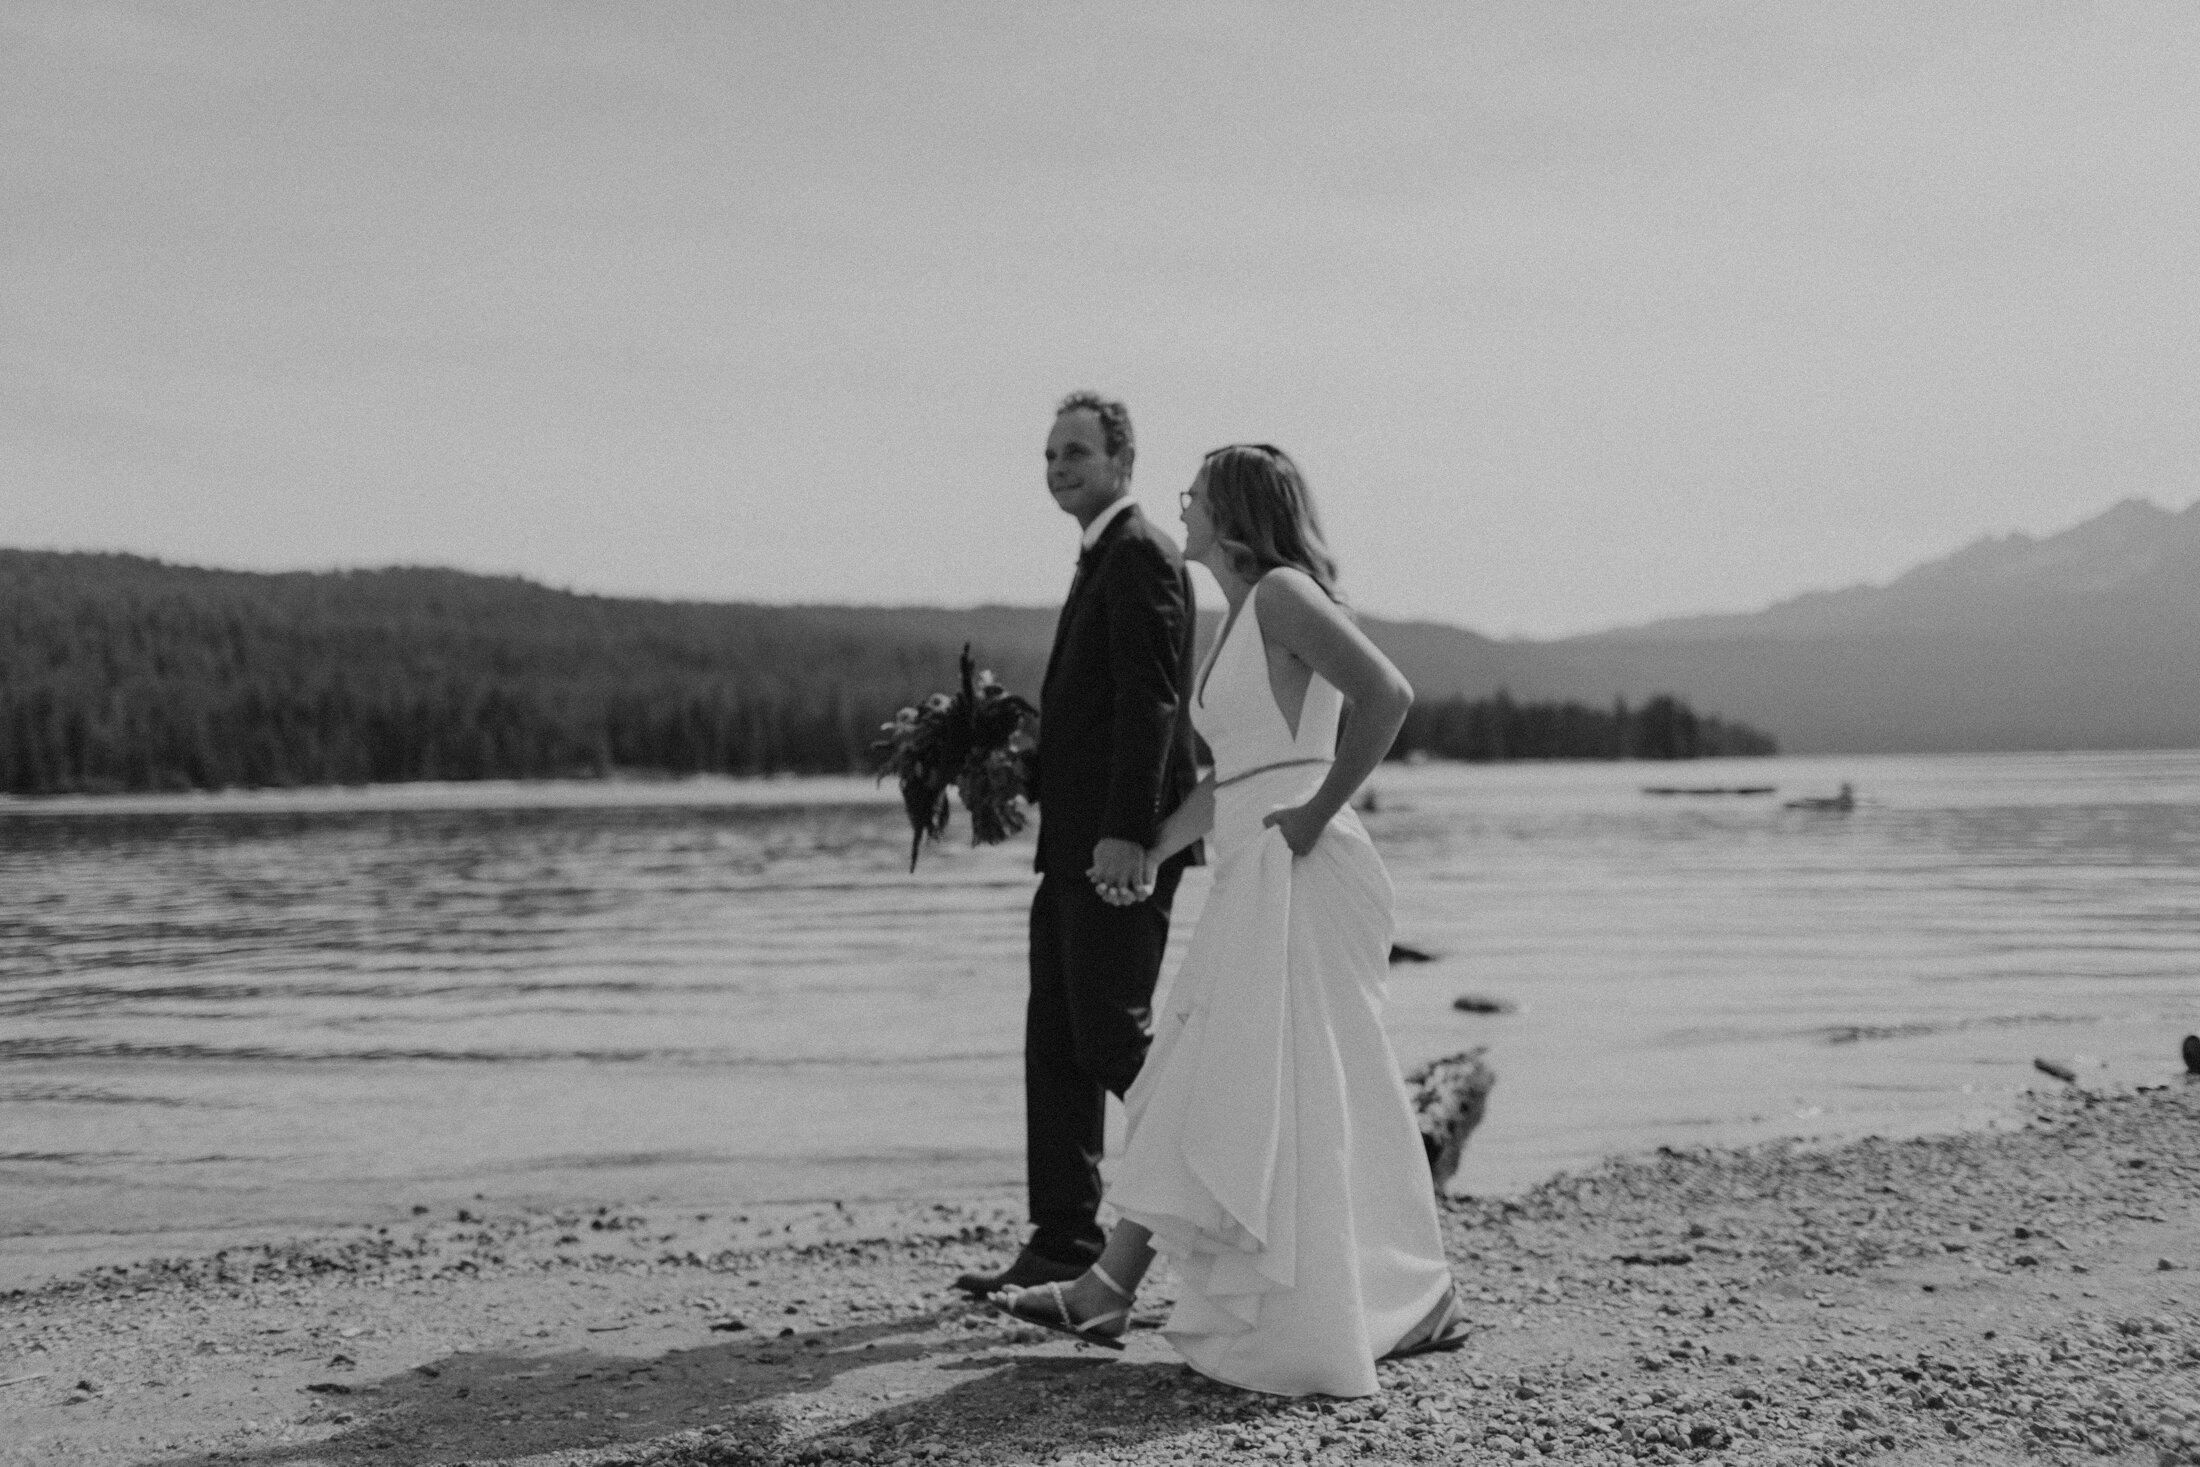 redfish-lake-wedding-stanley-idaho-b_A-99.jpg